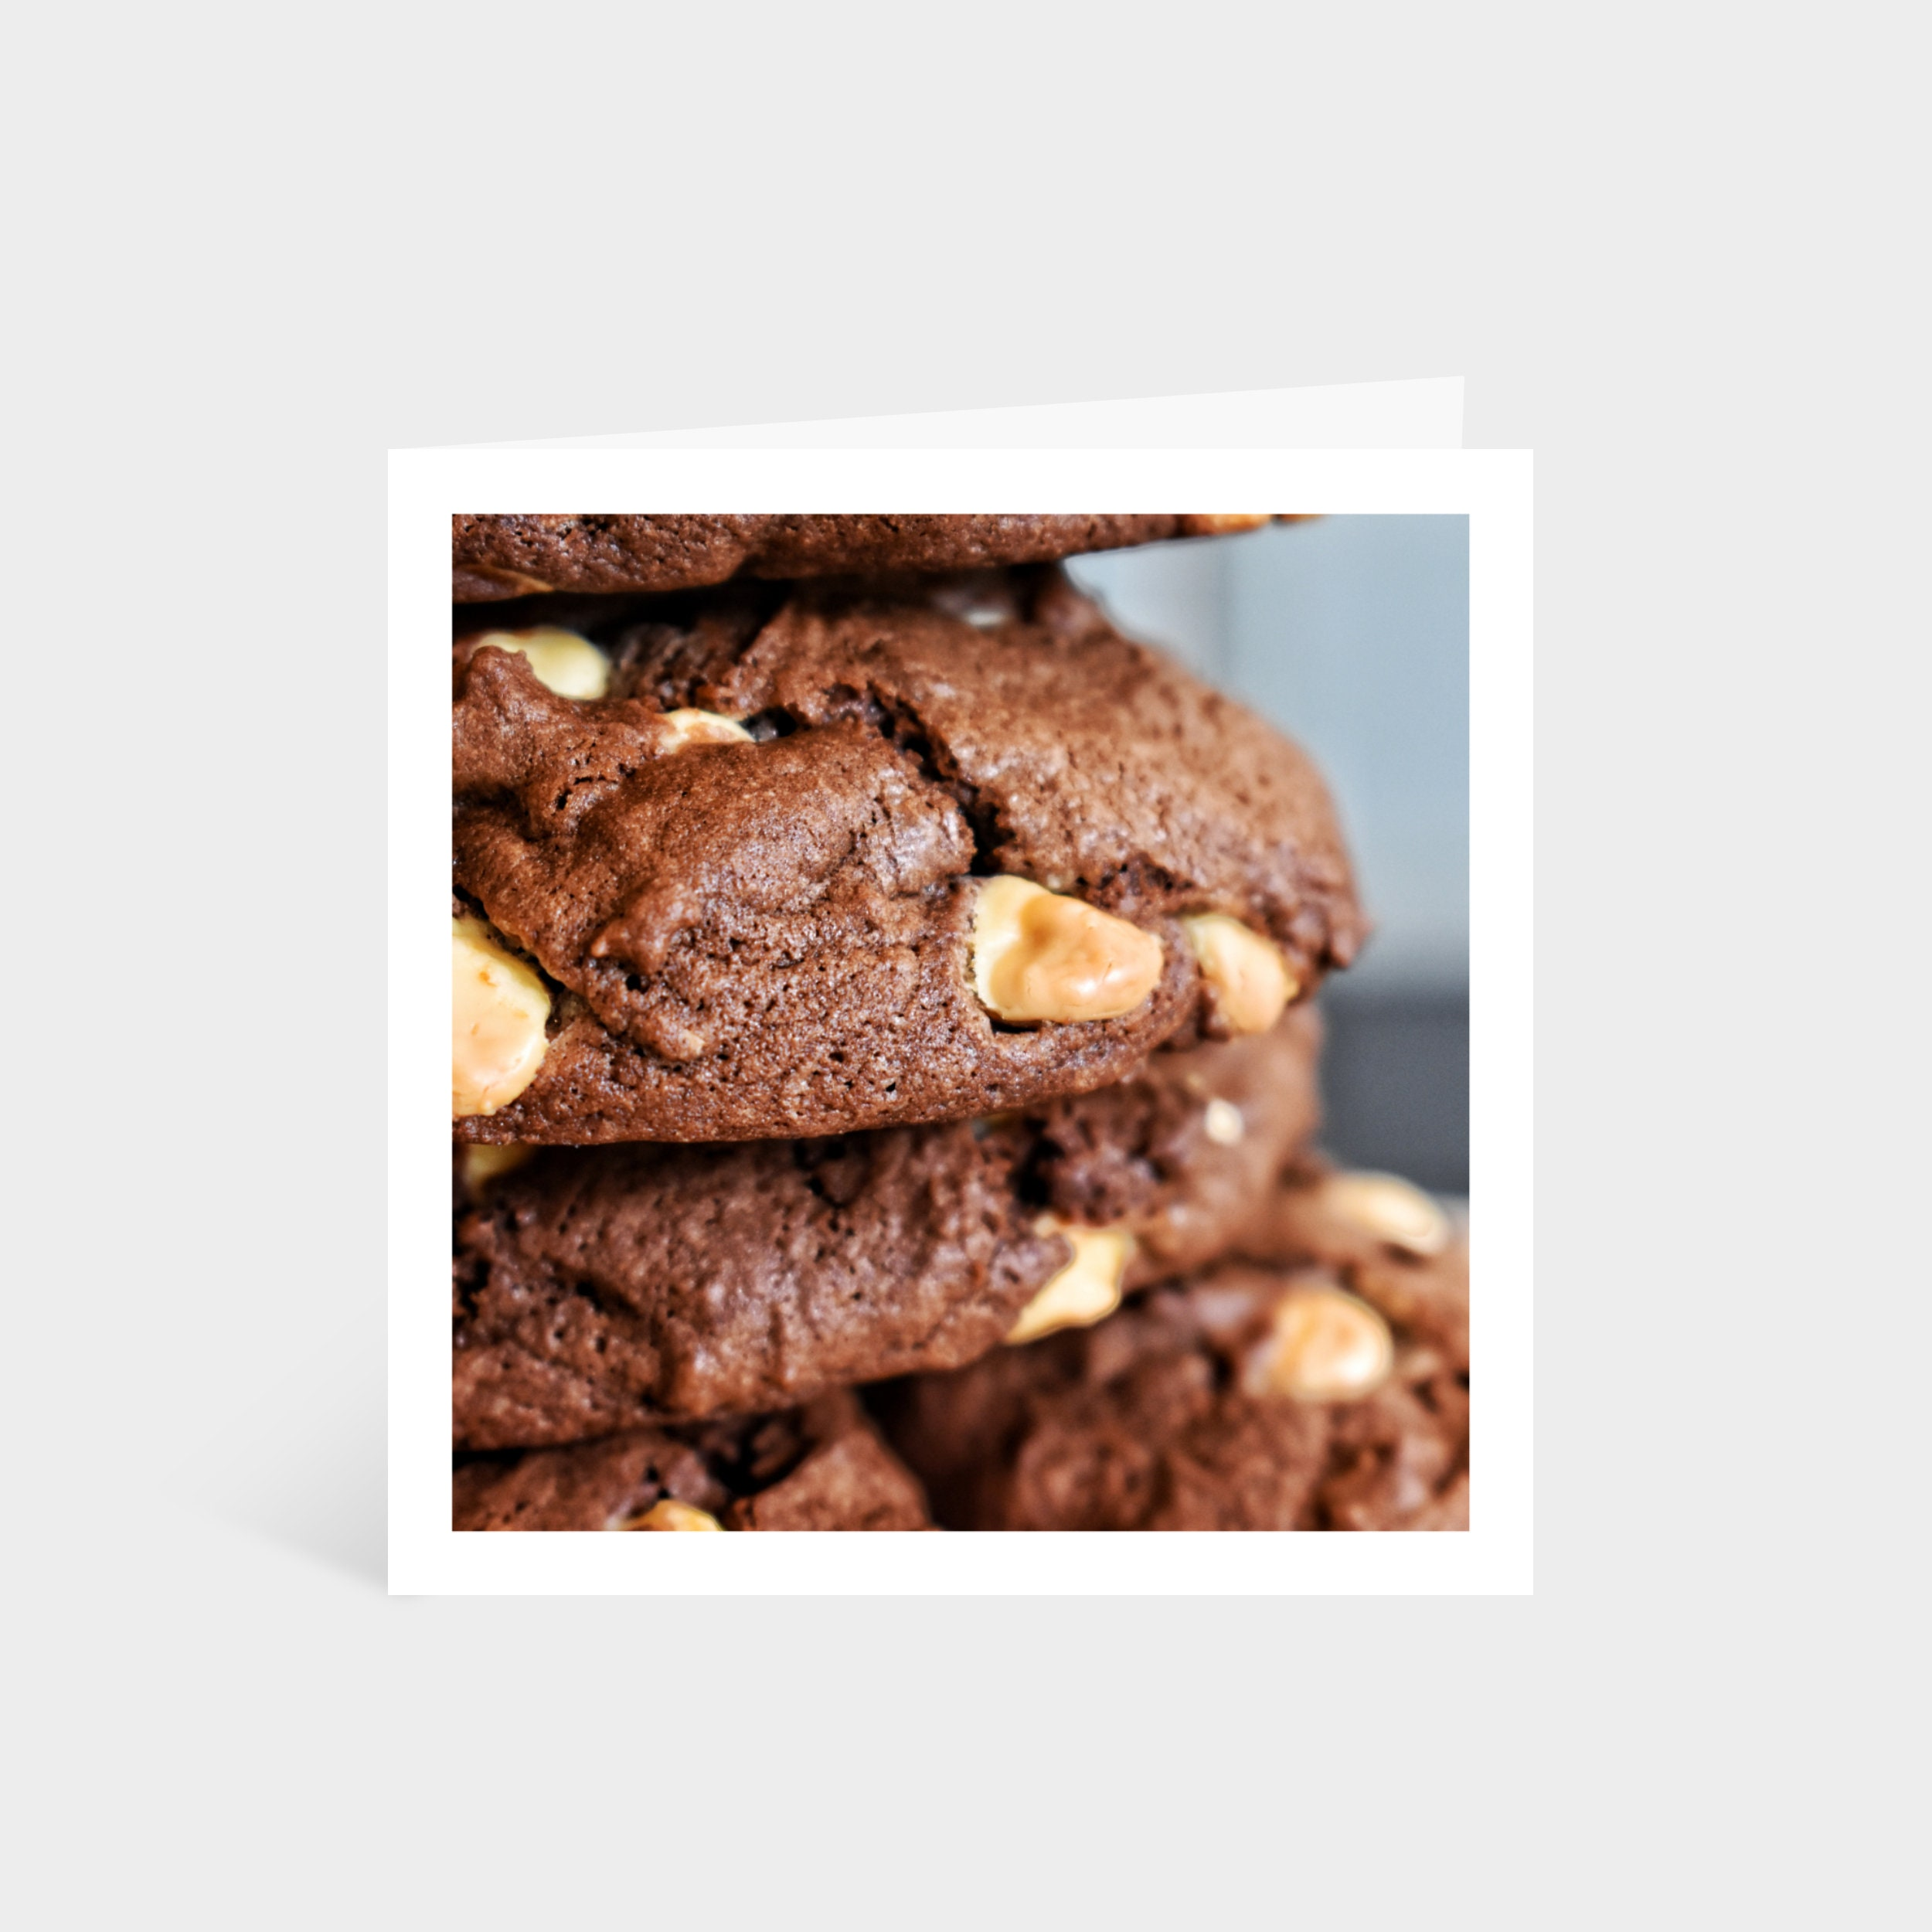 Standing square card with a close-up photo of a stack of double chocolate chip cookies